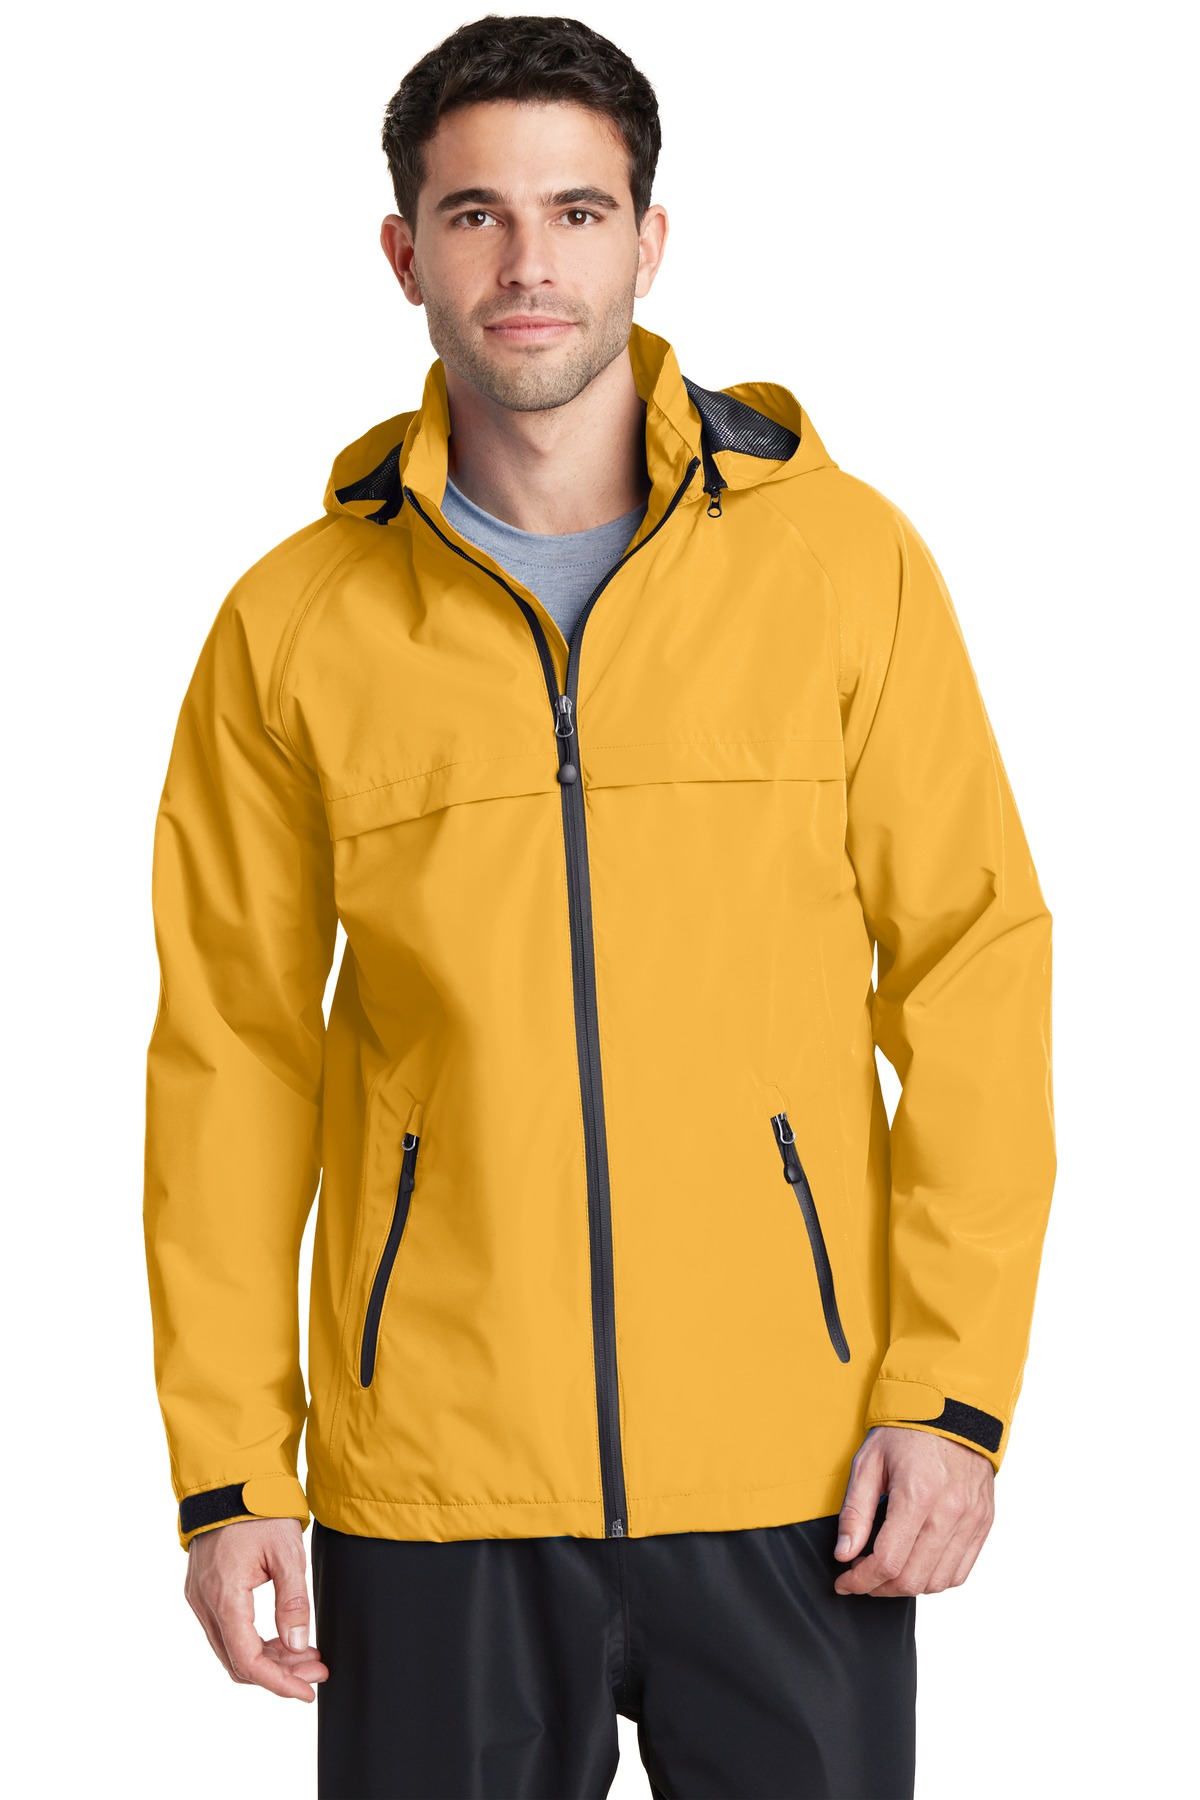 click to view Slicker Yellow